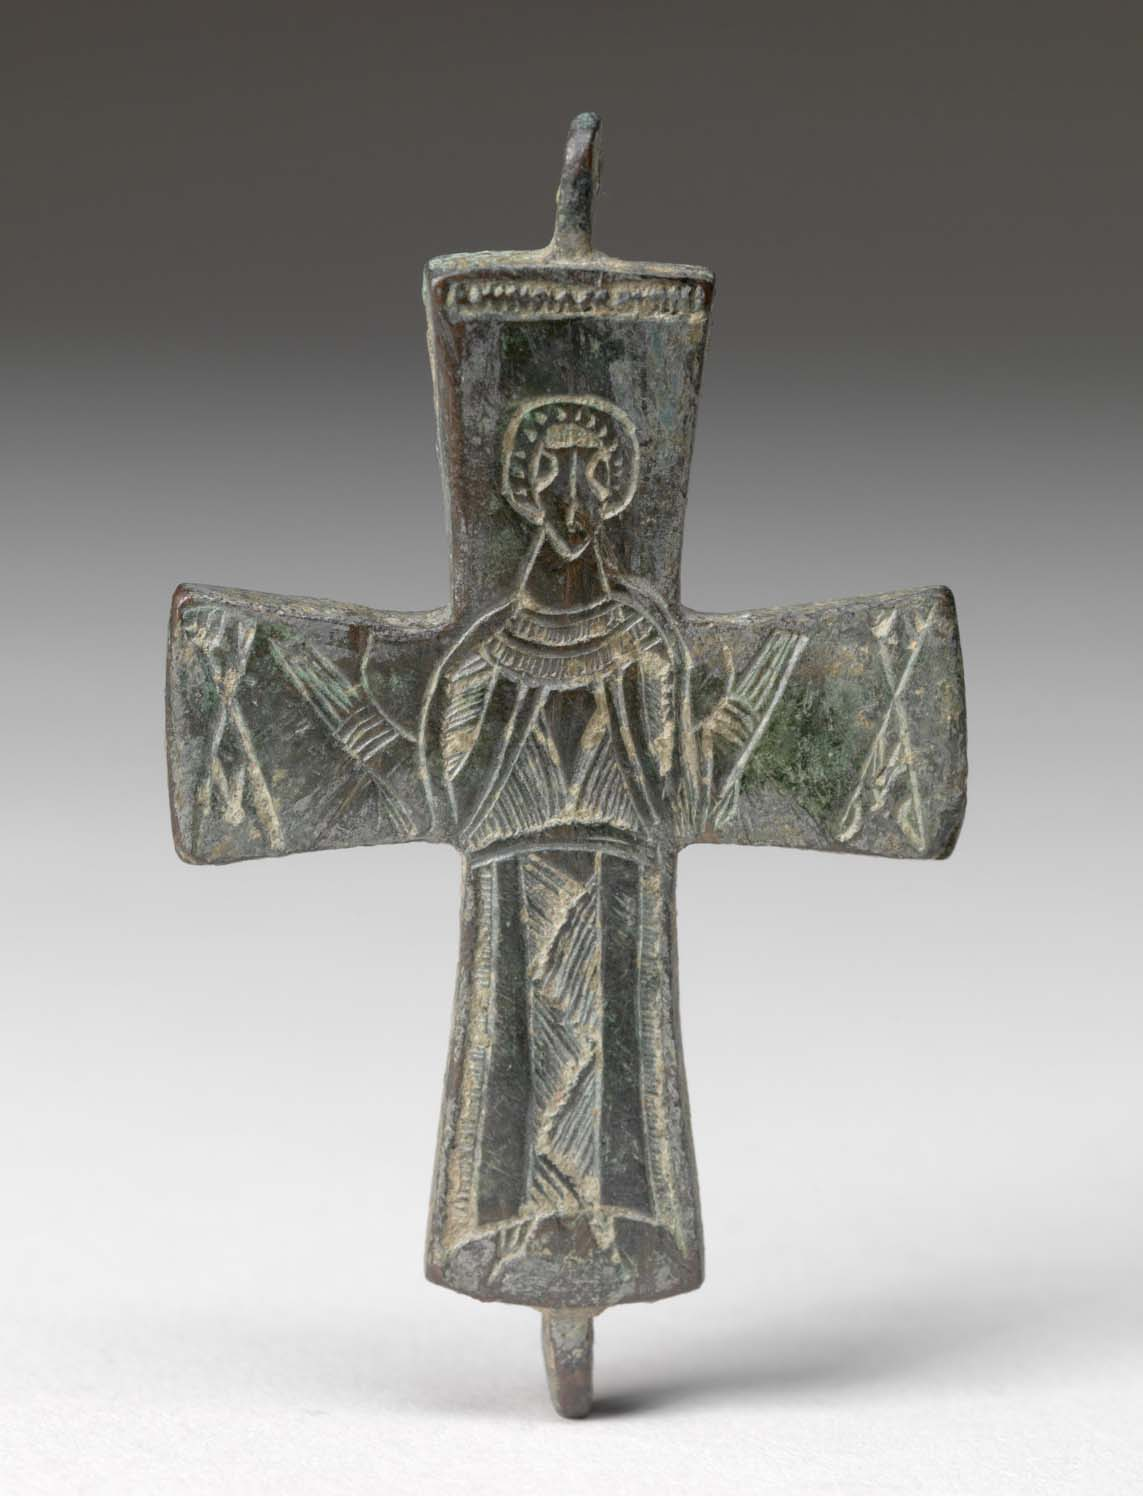 Byzantine. Cross, 6th century. Bronze, 3 x 1 7/8 in., 3/16 in. Gift of John Davis Hatch V, 84.32.3